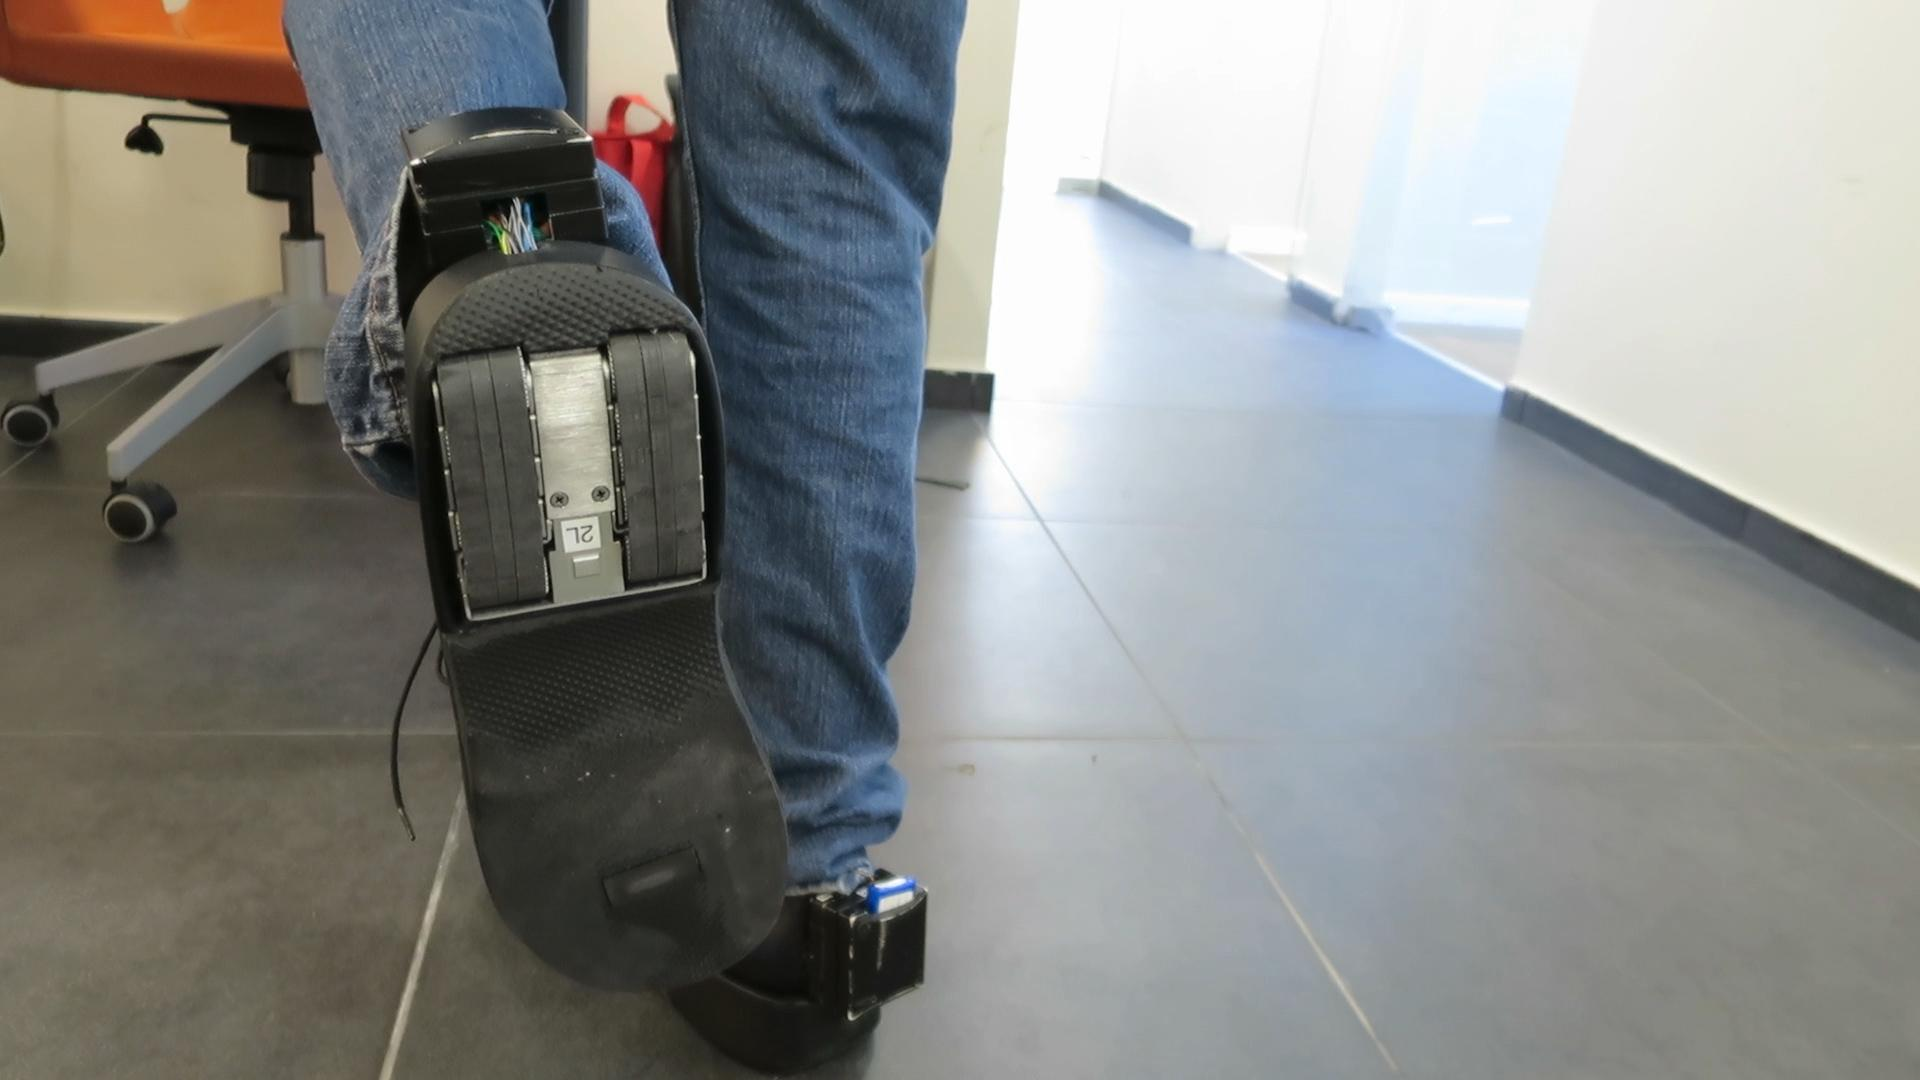 B-Shoe | Anti-falling shoe for the elderly